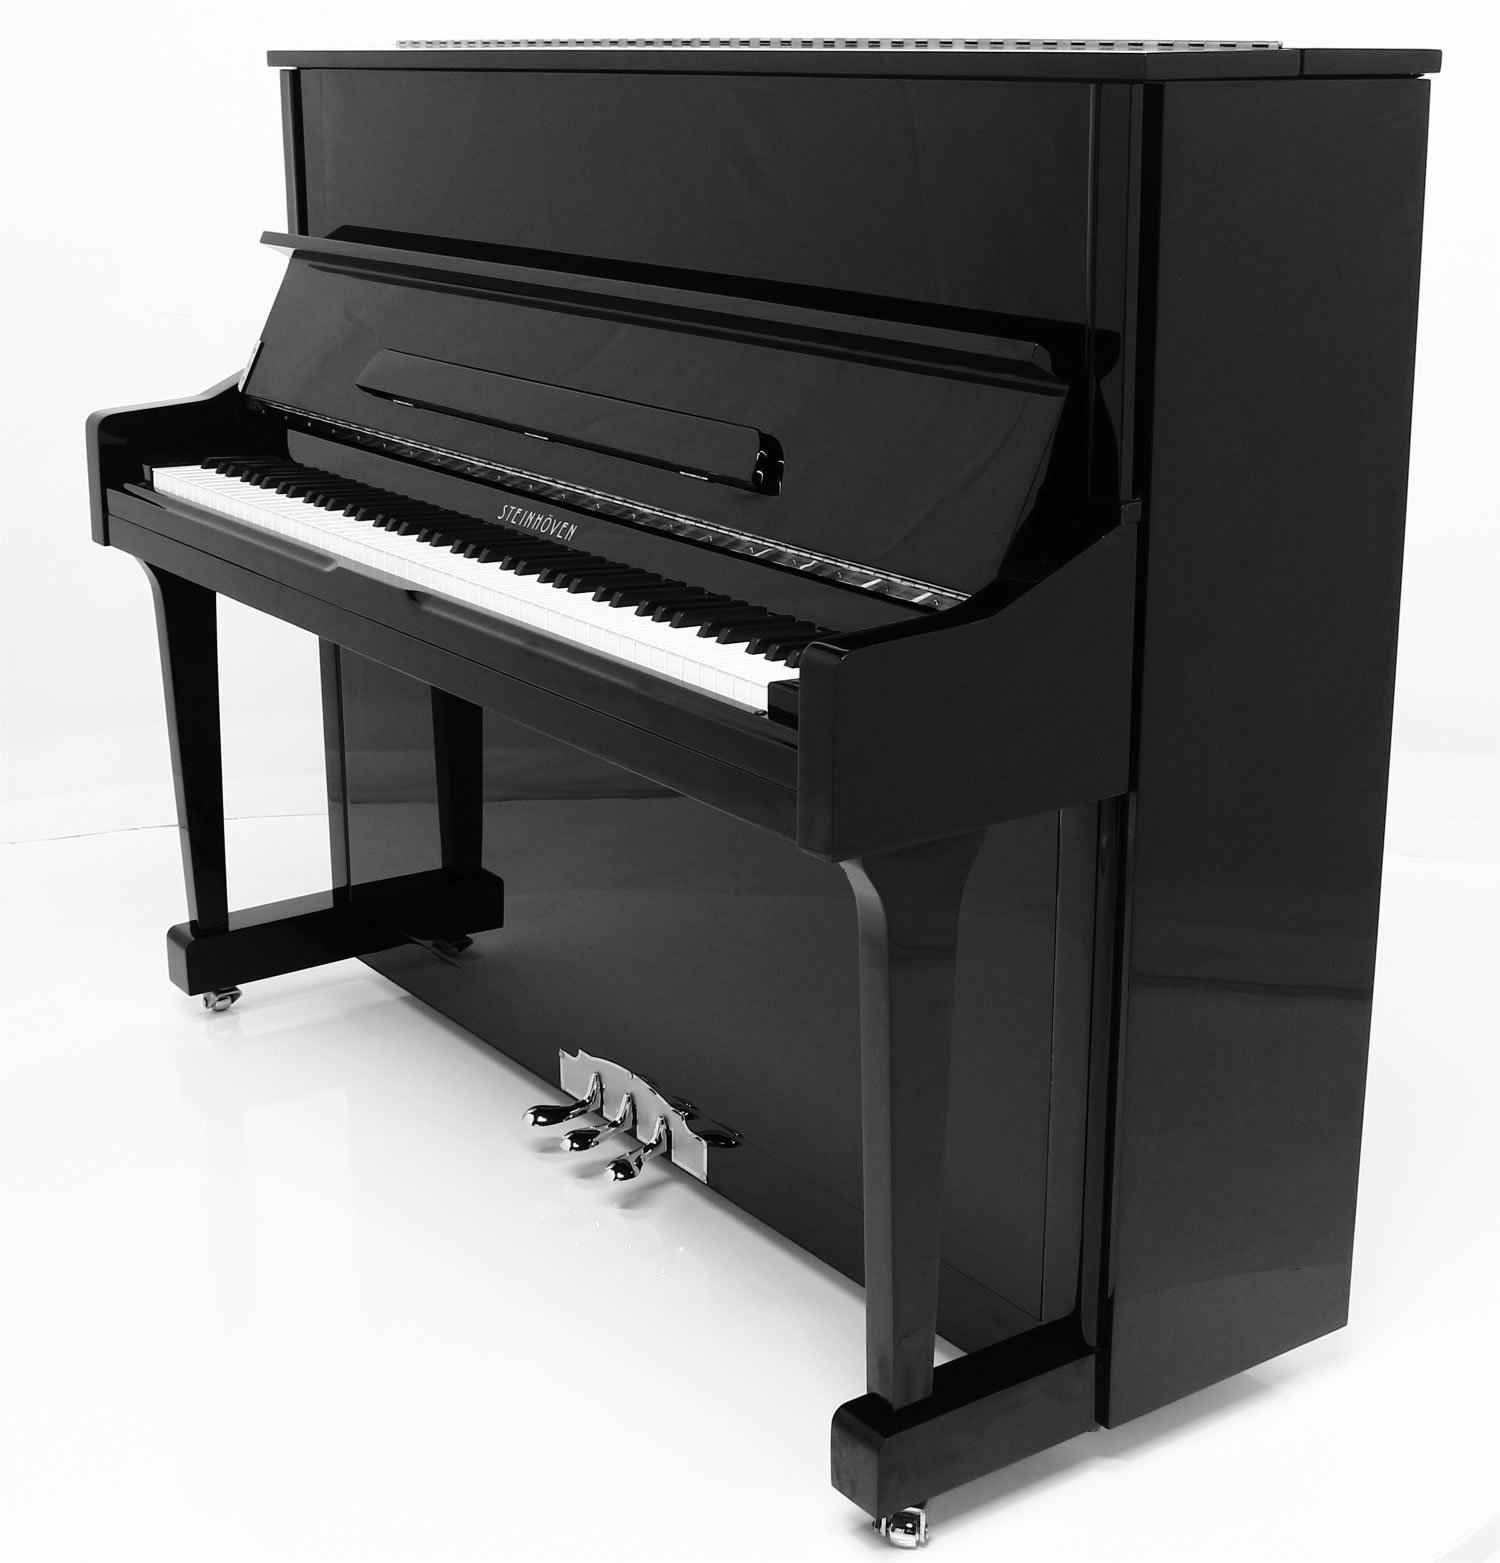 "Steinhoven SU121 Upright Piano, Polished Ebony (121cm, 47.5"") - FREE DELIVERY"